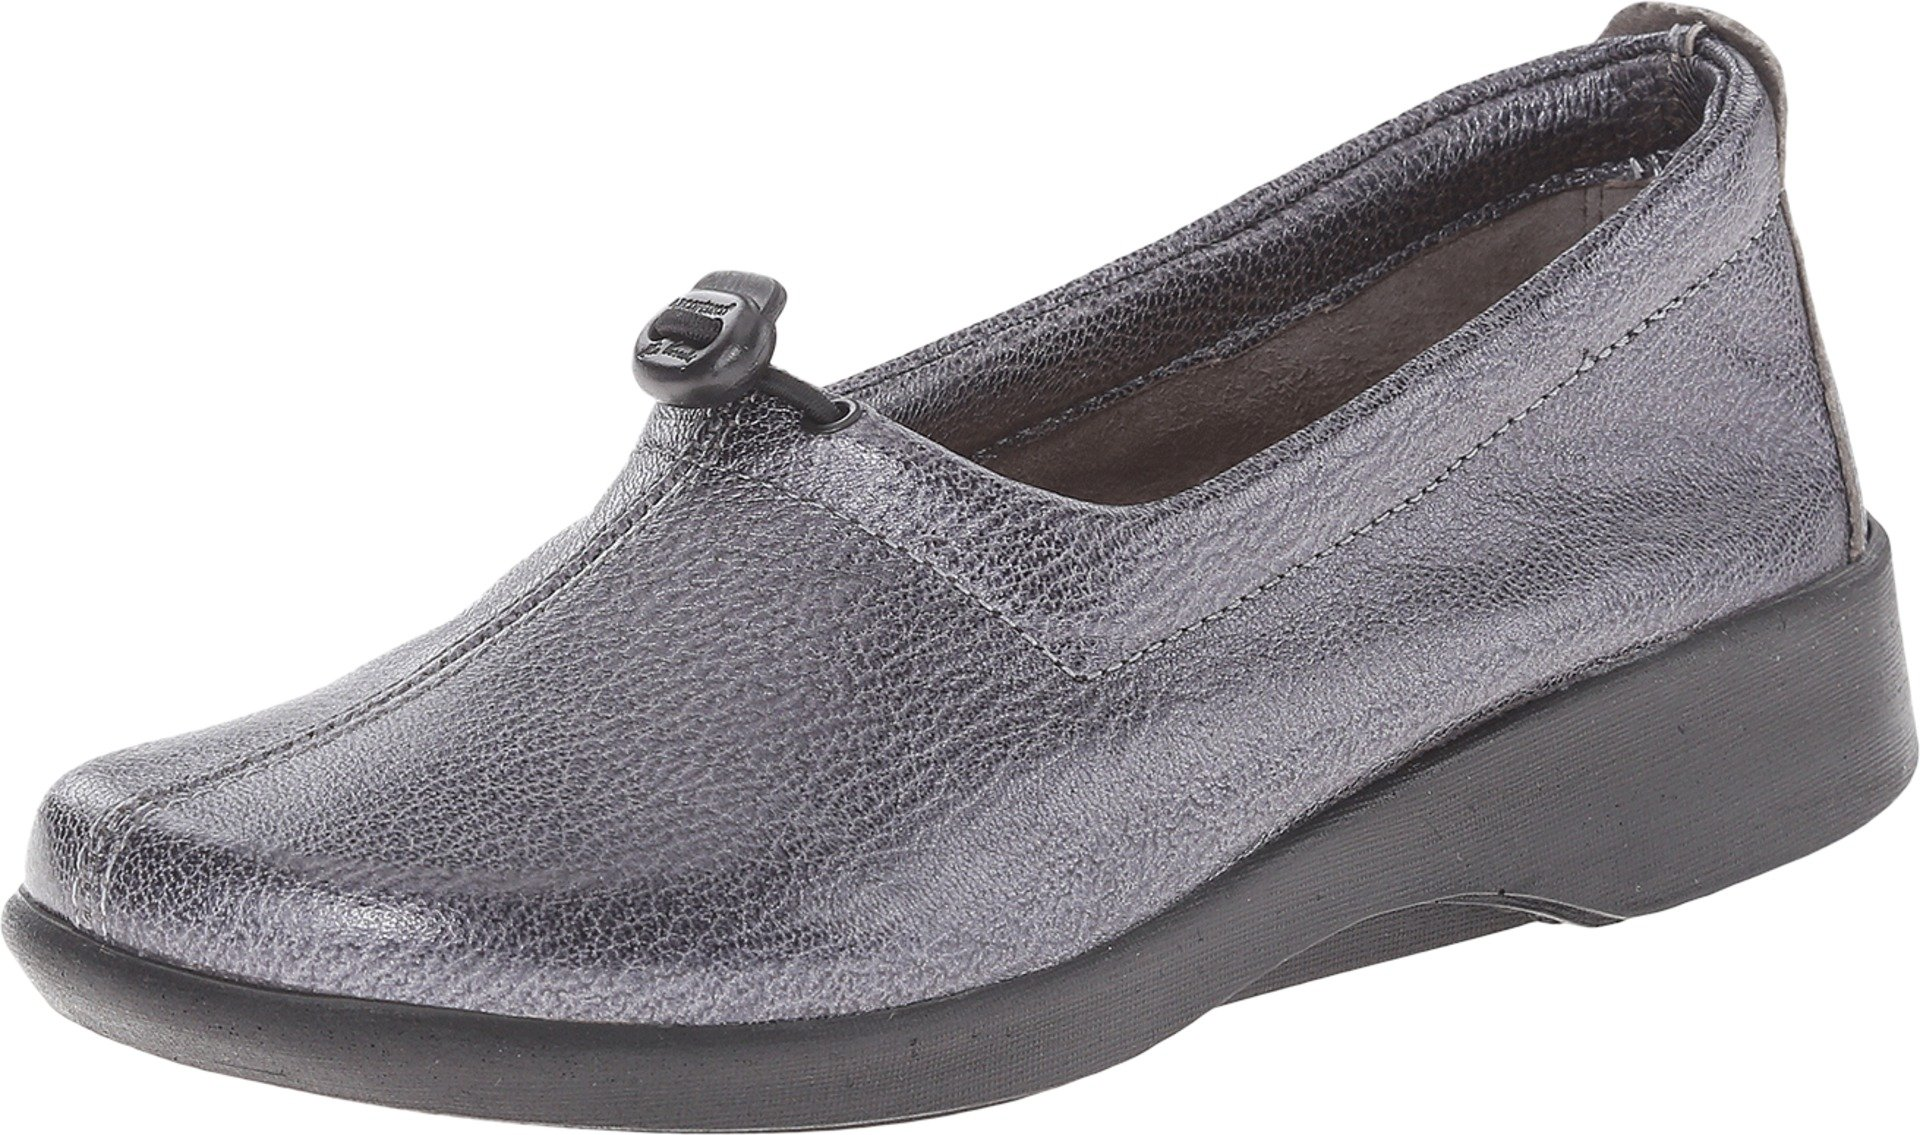 Arcopedico Womens Queen II Slip-On (7851) Pewter Size 41 EU (10-10.5 M US Women)